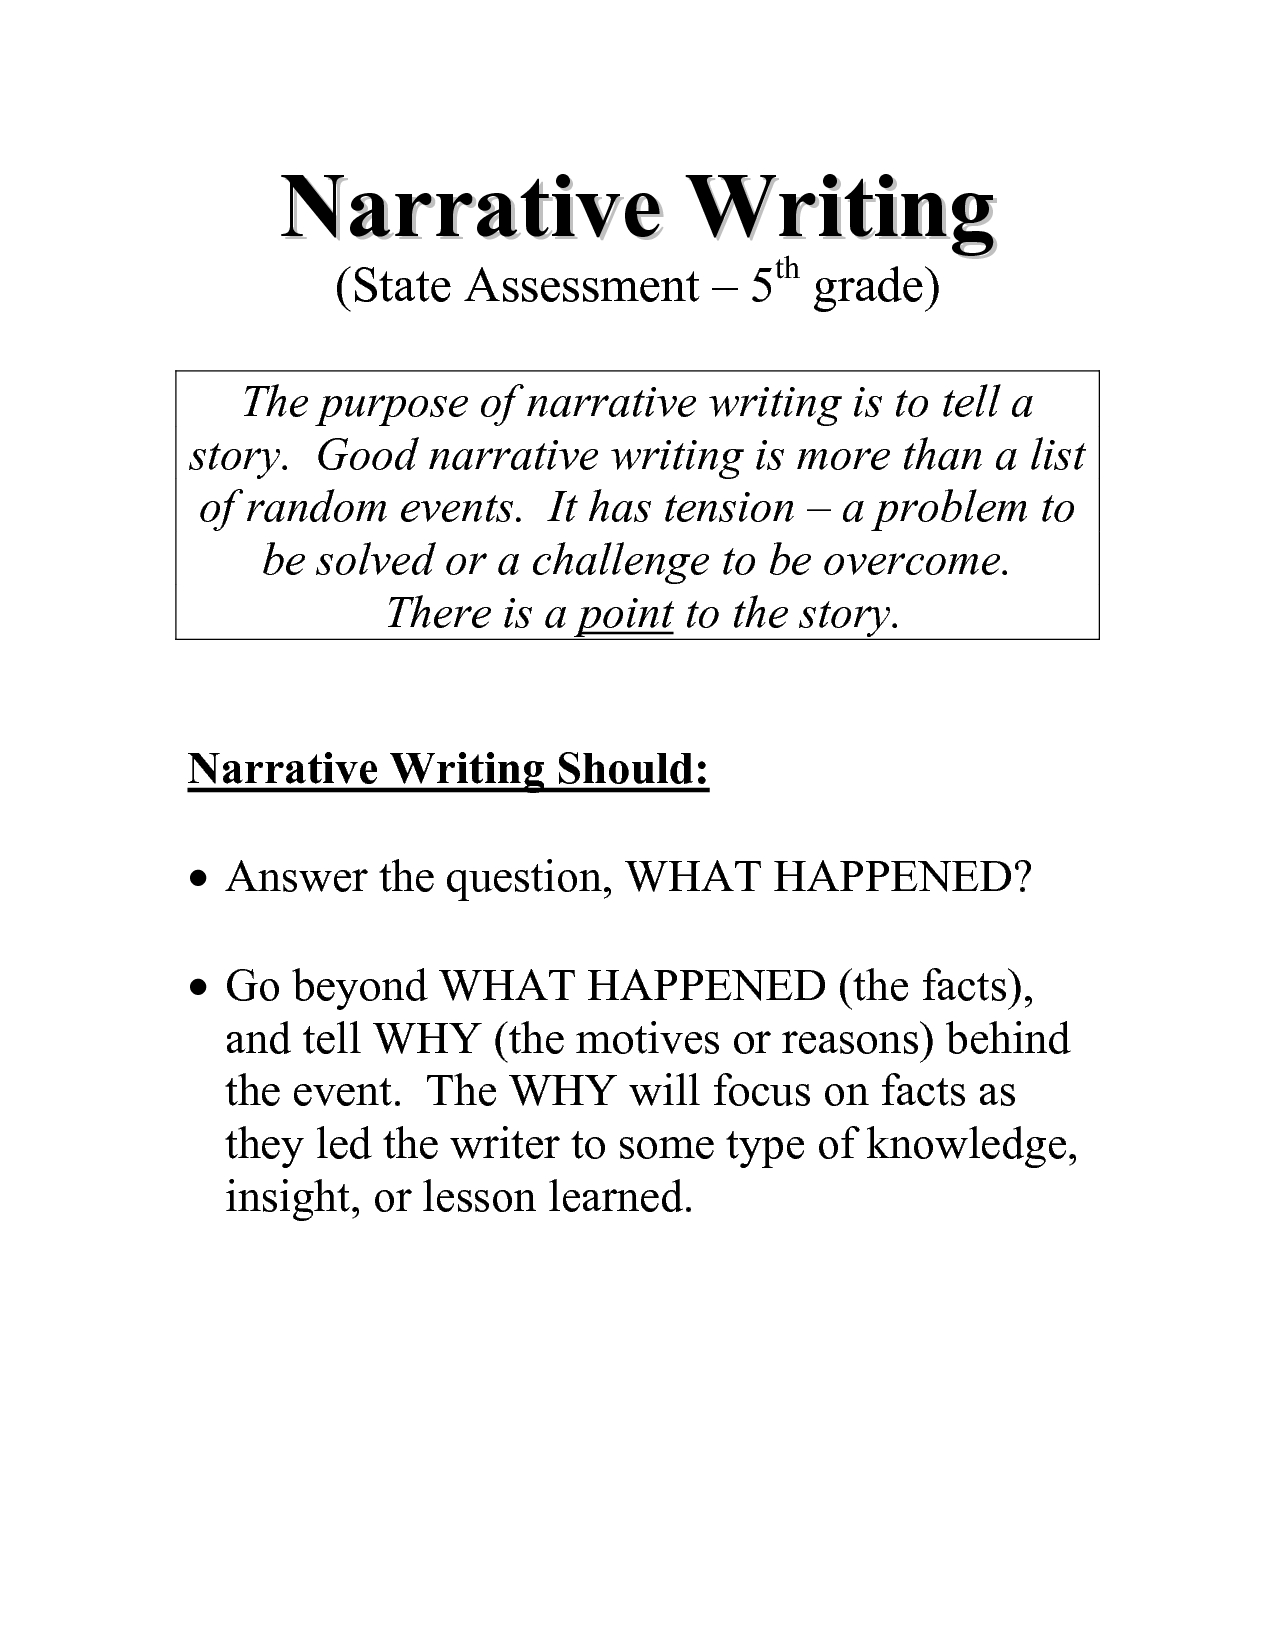 10 Stylish Ideas For A Narrative Essay narrative essay prompts etame mibawa co 2020